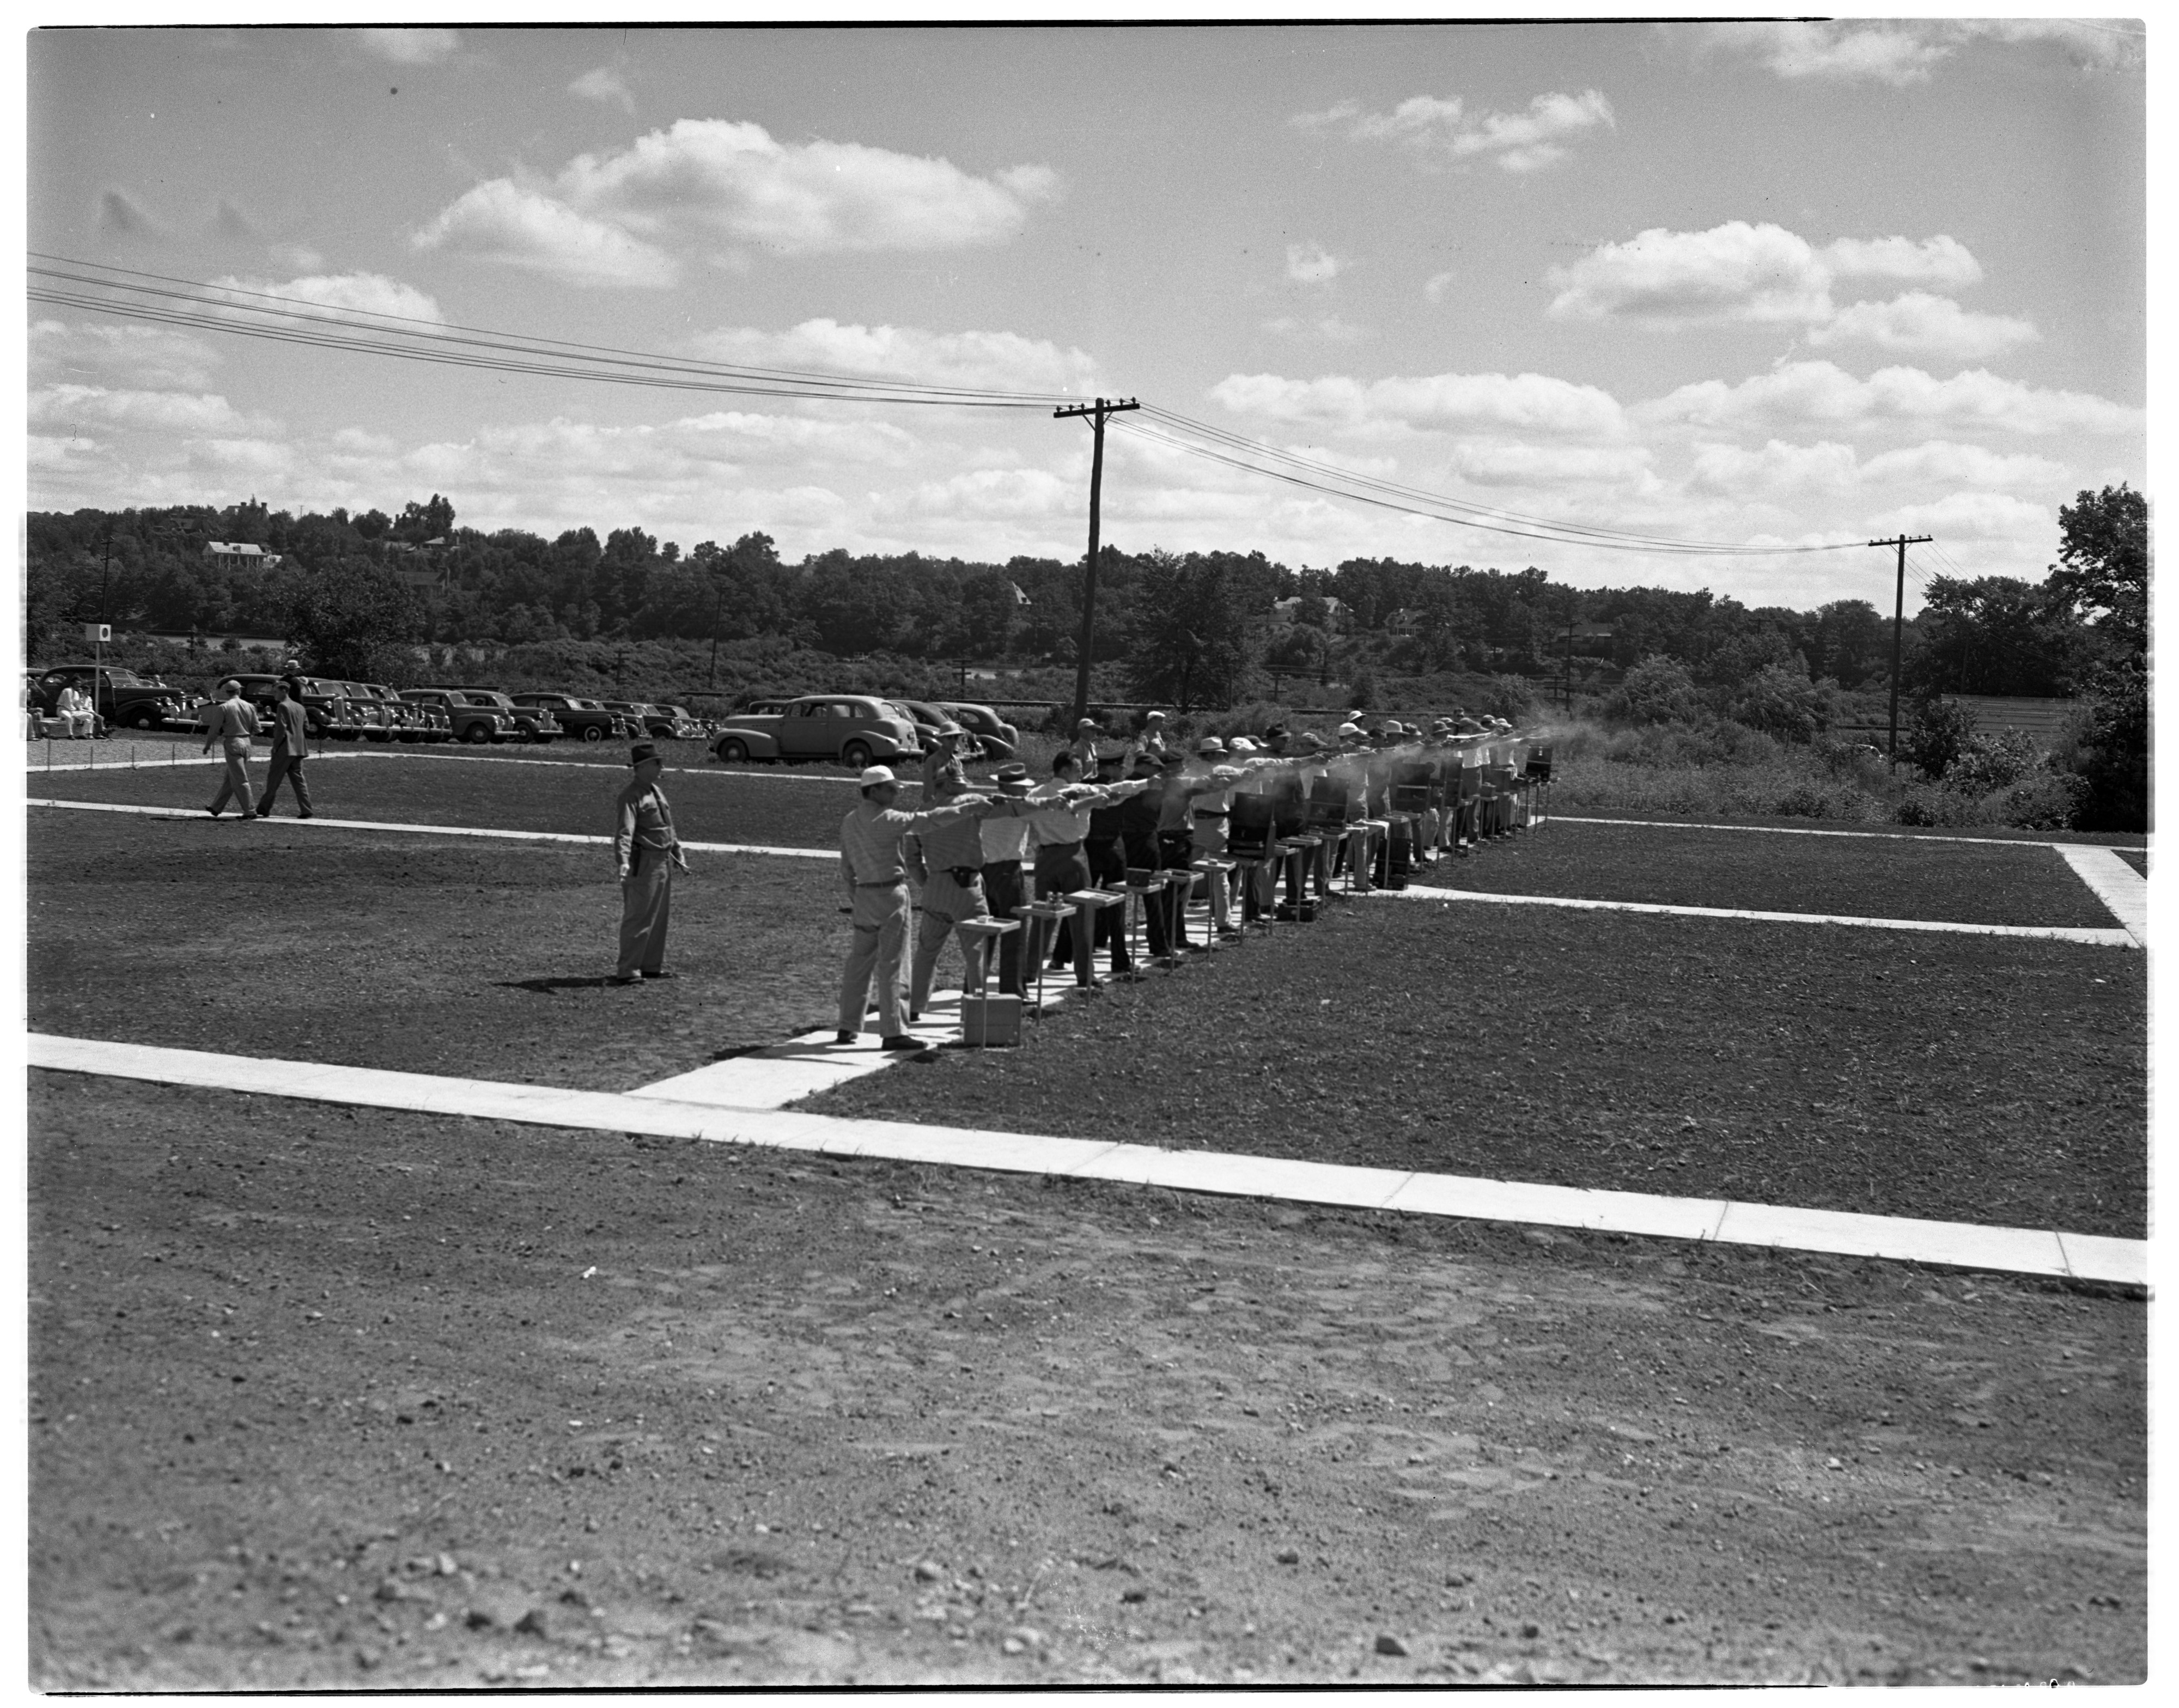 Firing Line At The Ann Arbor Police Department's Invitational Pistol Match, July 1941 image